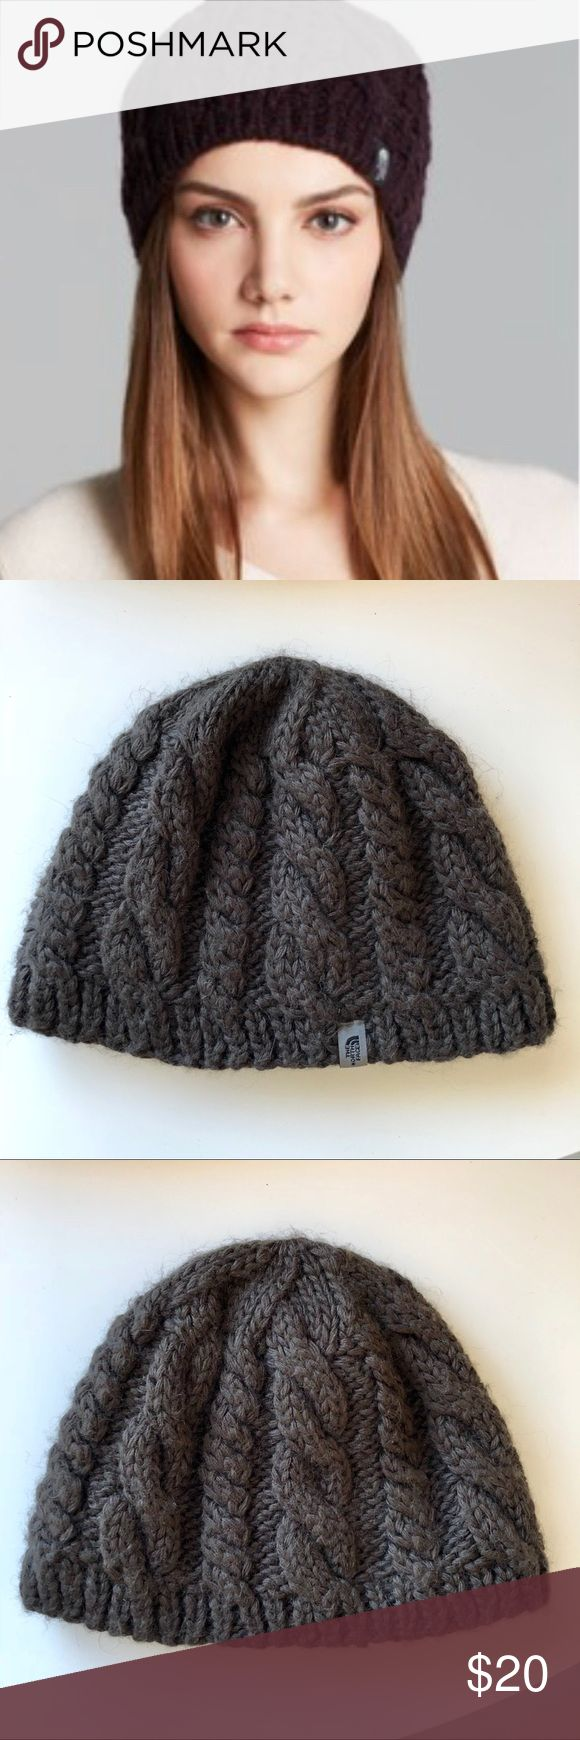 The North Face Cable Fish Wool Beanie Hat Brown Perfect condition, I bought this and never wore it. Brunette Brown.  This attractive, wool-blend, beanie is ideal for cold days on or off the mountain. Interior micro-fleece ear band provides added warmth where you need it most.  PRODUCT SPECIFICATIONS lining: micro-fleece earband shell: wool blend—50% wool, 40% acrylic, 10% alpaca The North Face Accessories Hats